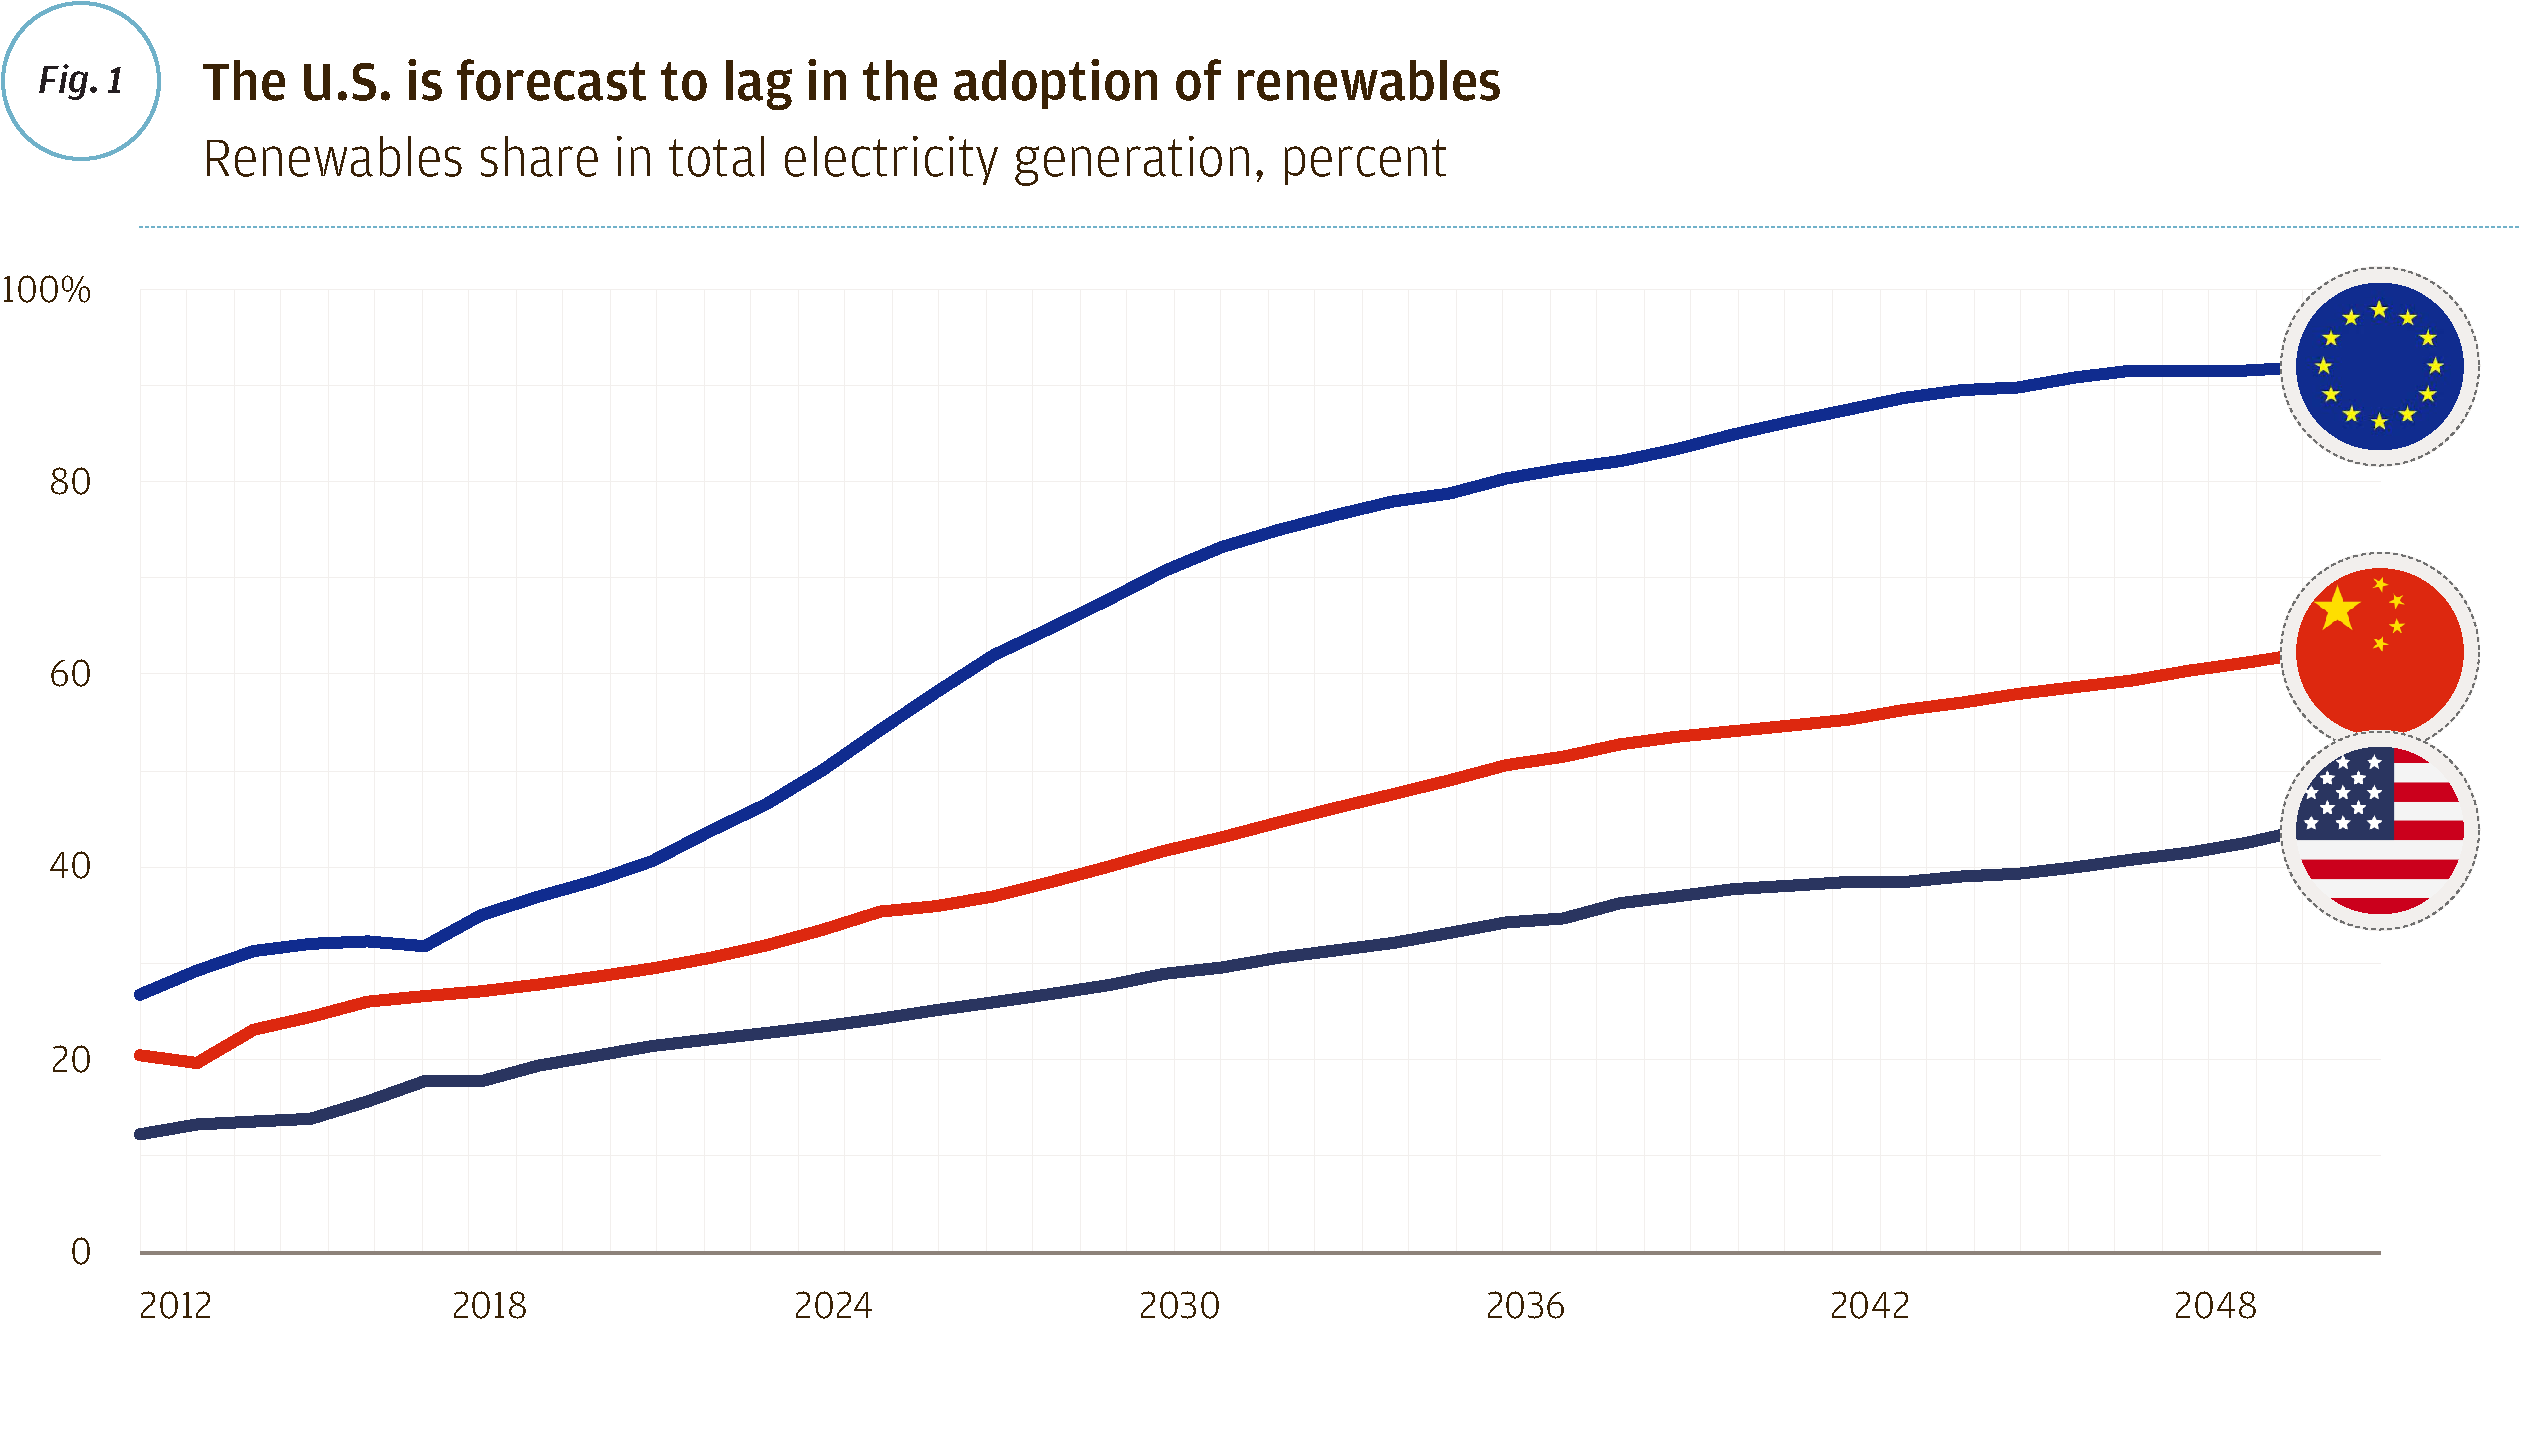 The U.S. is forecast to lag in the adoption of renewables.